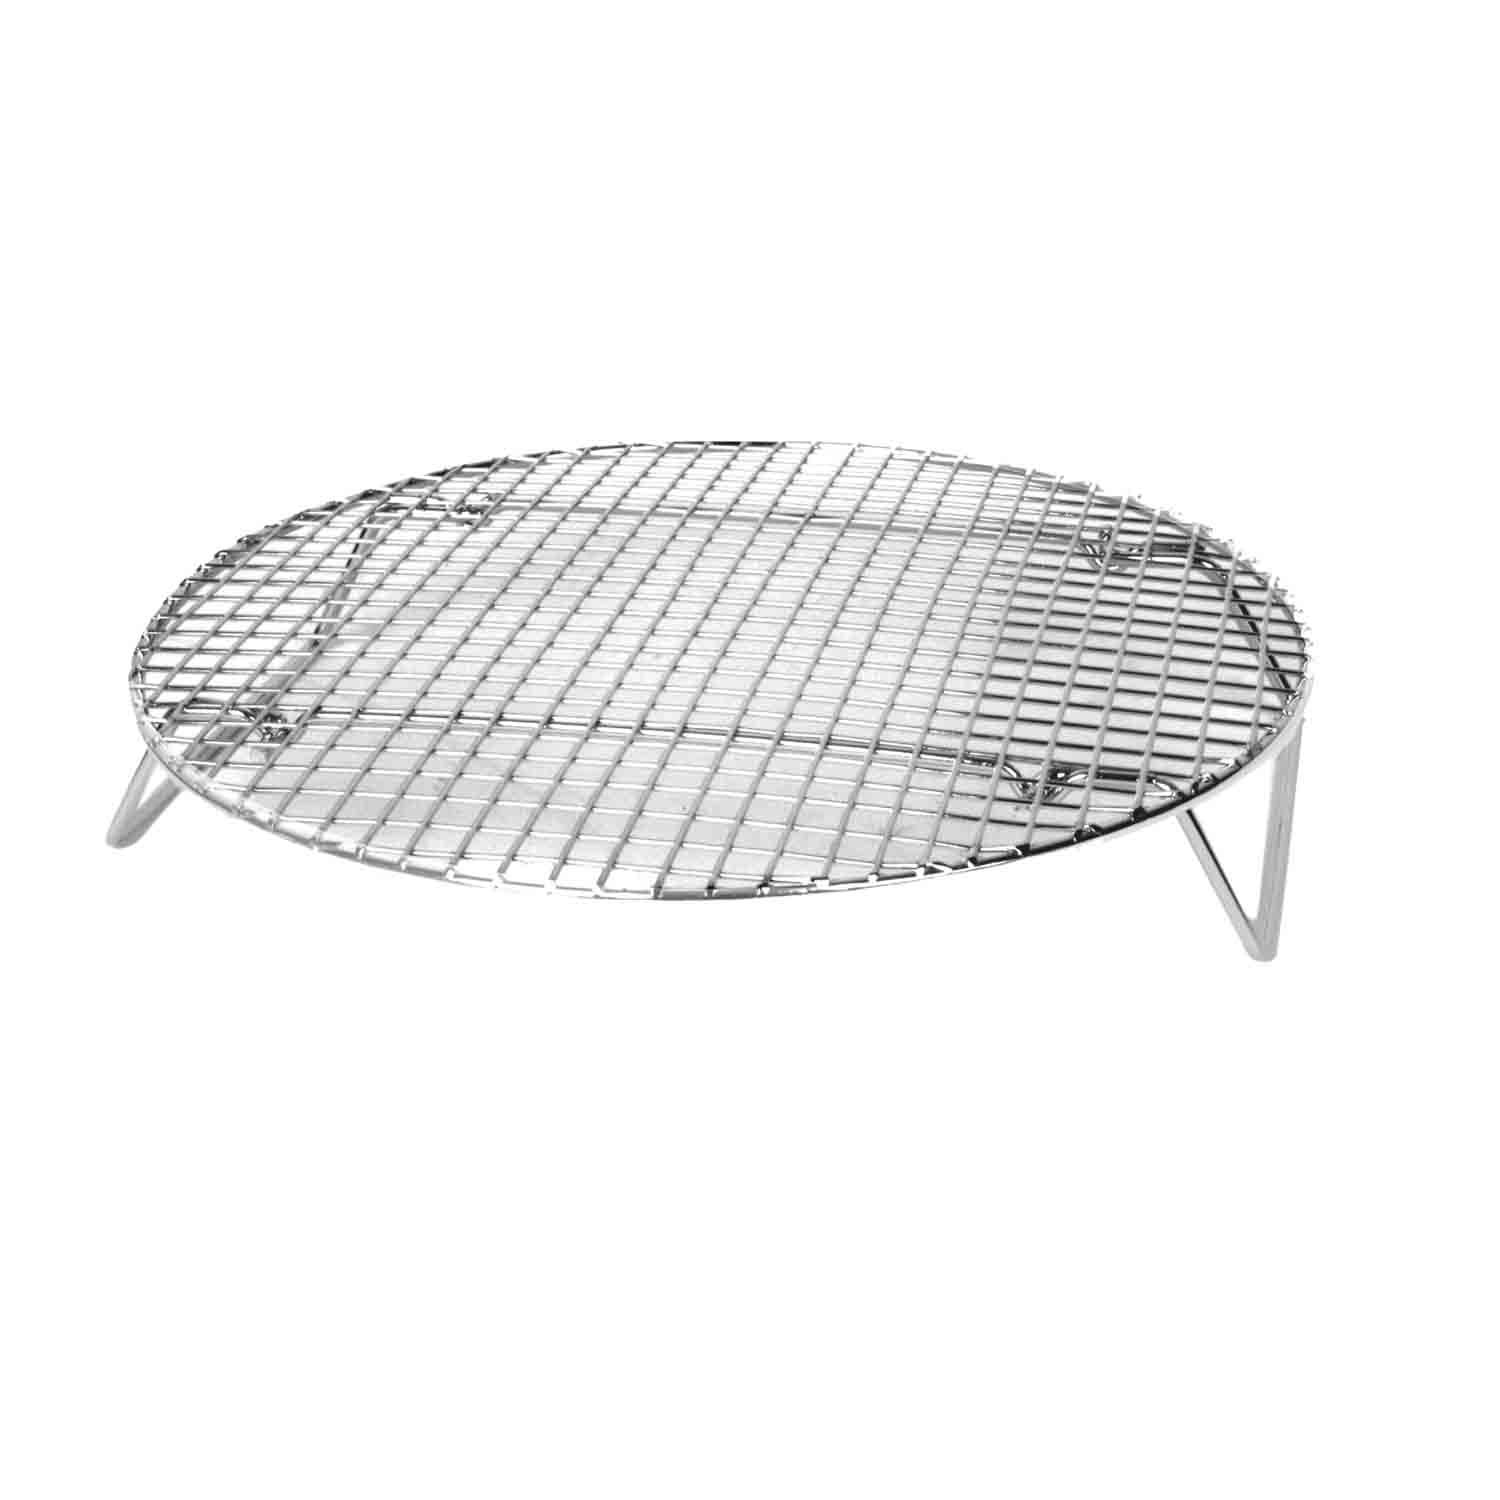 Excellante Nickel Plated Round Cooling/ Steamer Rack, 12-3/4-Inch SLRACK1234